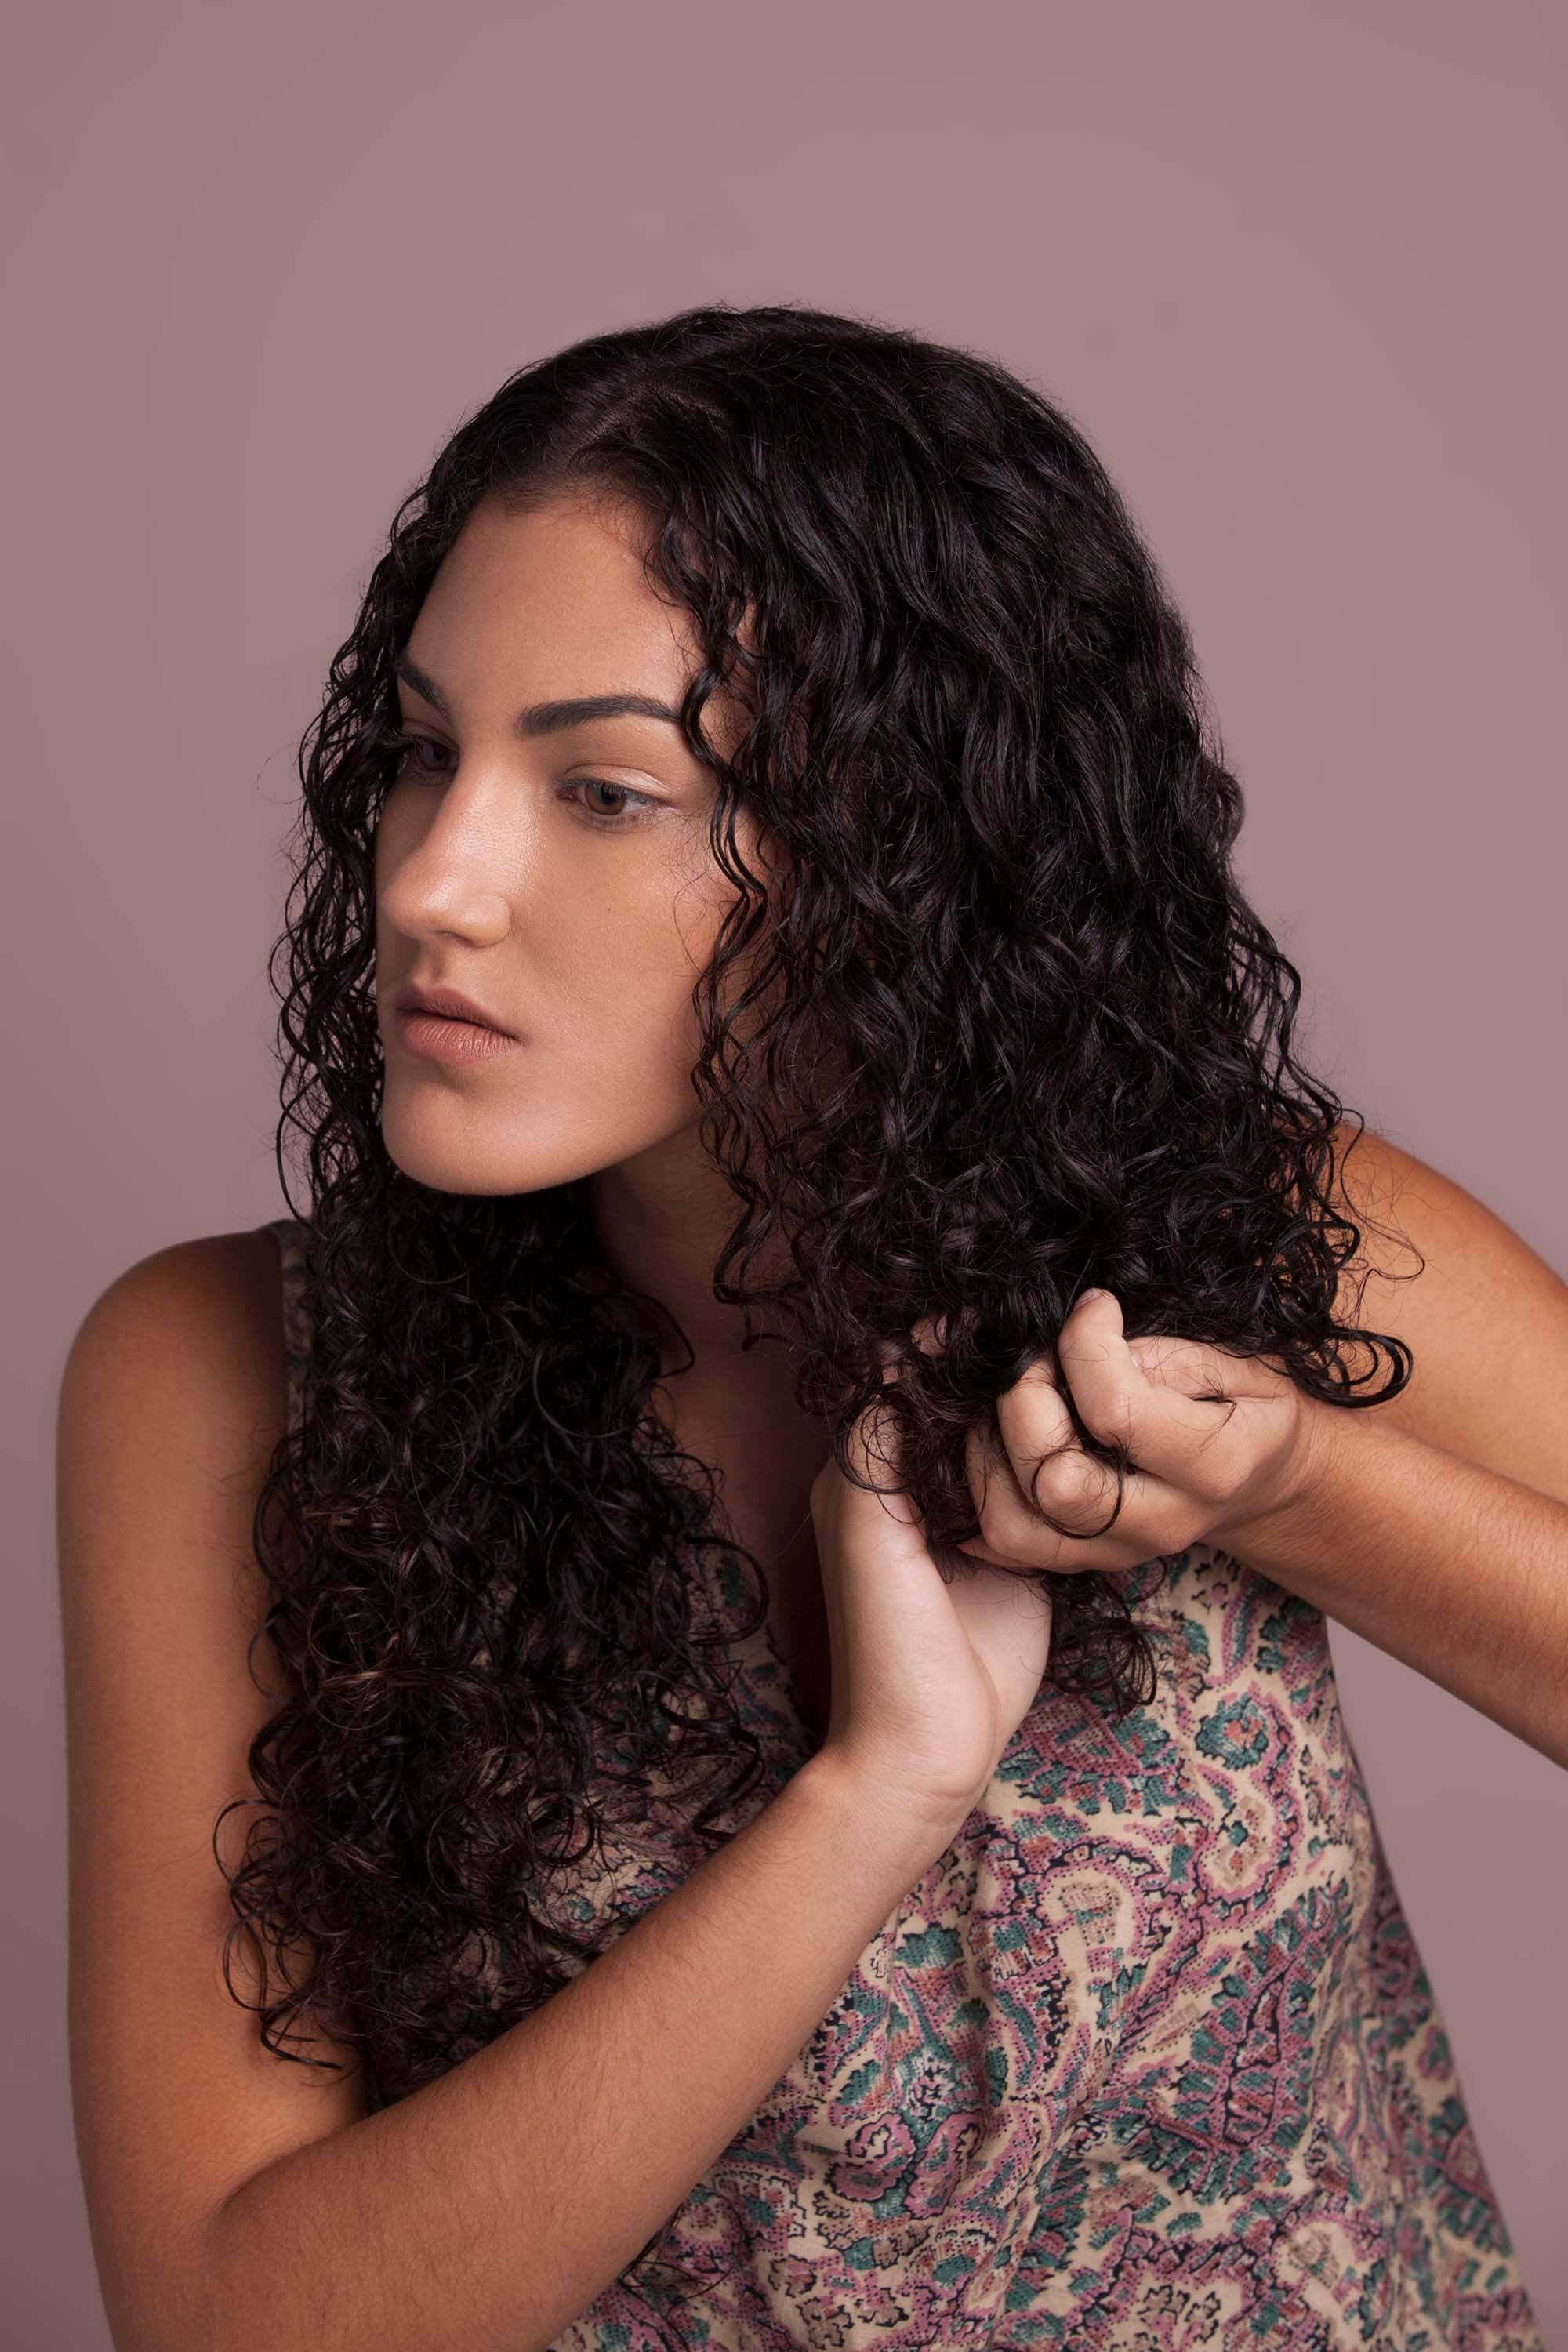 Woman with brunette curly hair scrunching her hair in her hands